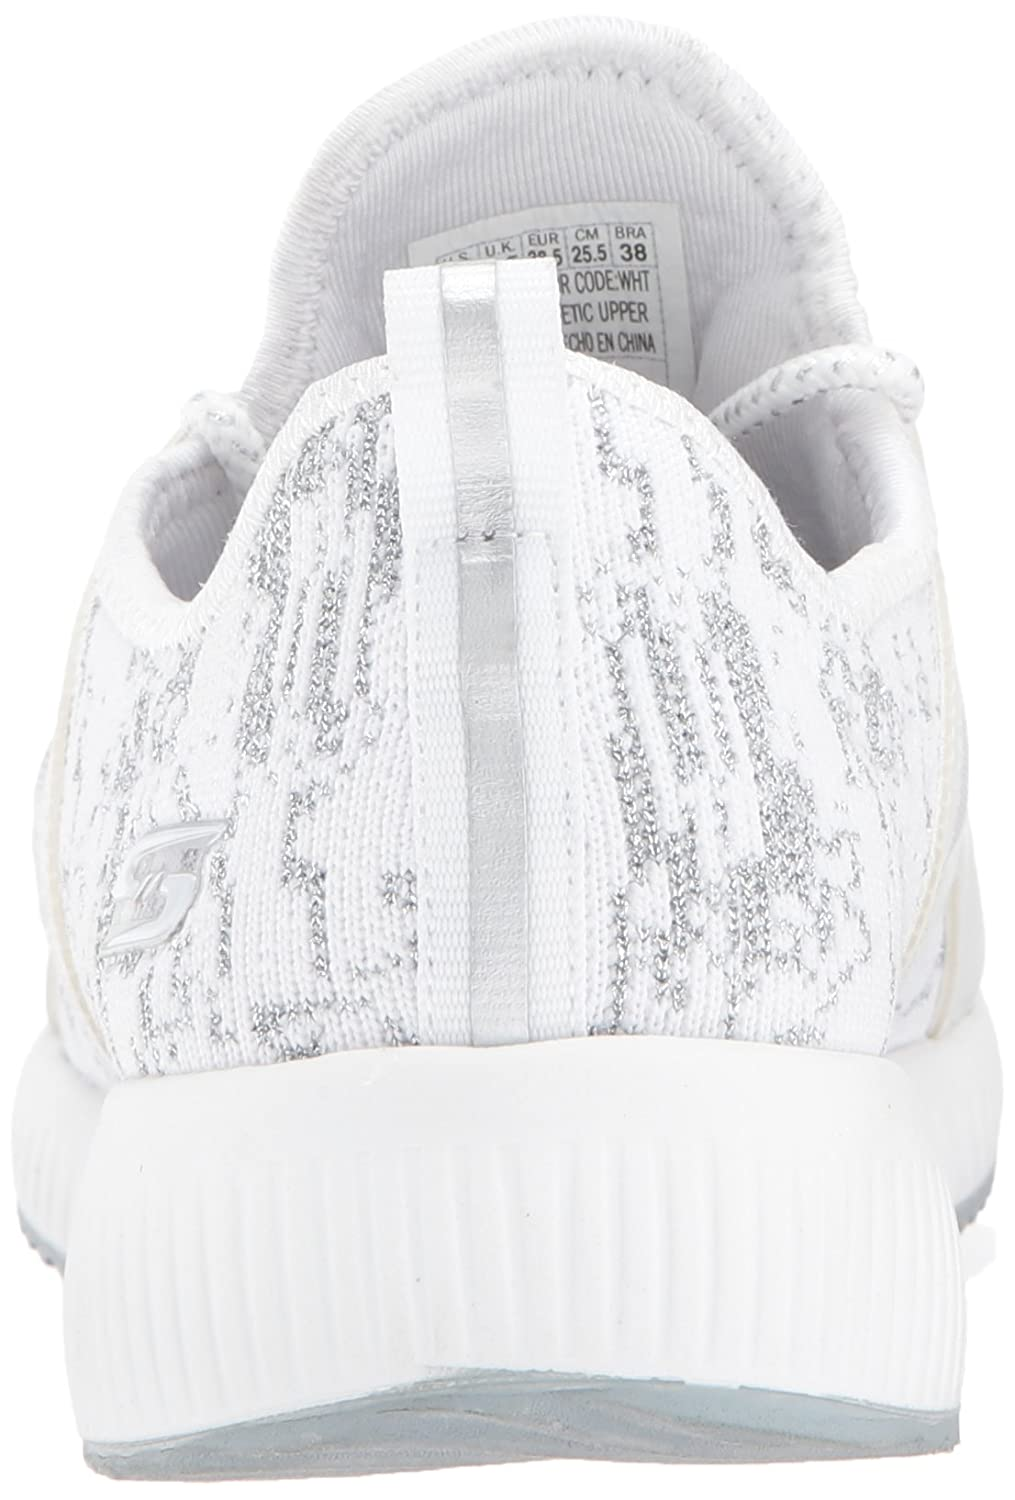 BOBS from from from Skechers Woherren Bobs Squad-Glossy Finish Fashion Turnschuhe Weiß 8.5 M US 42e8cc